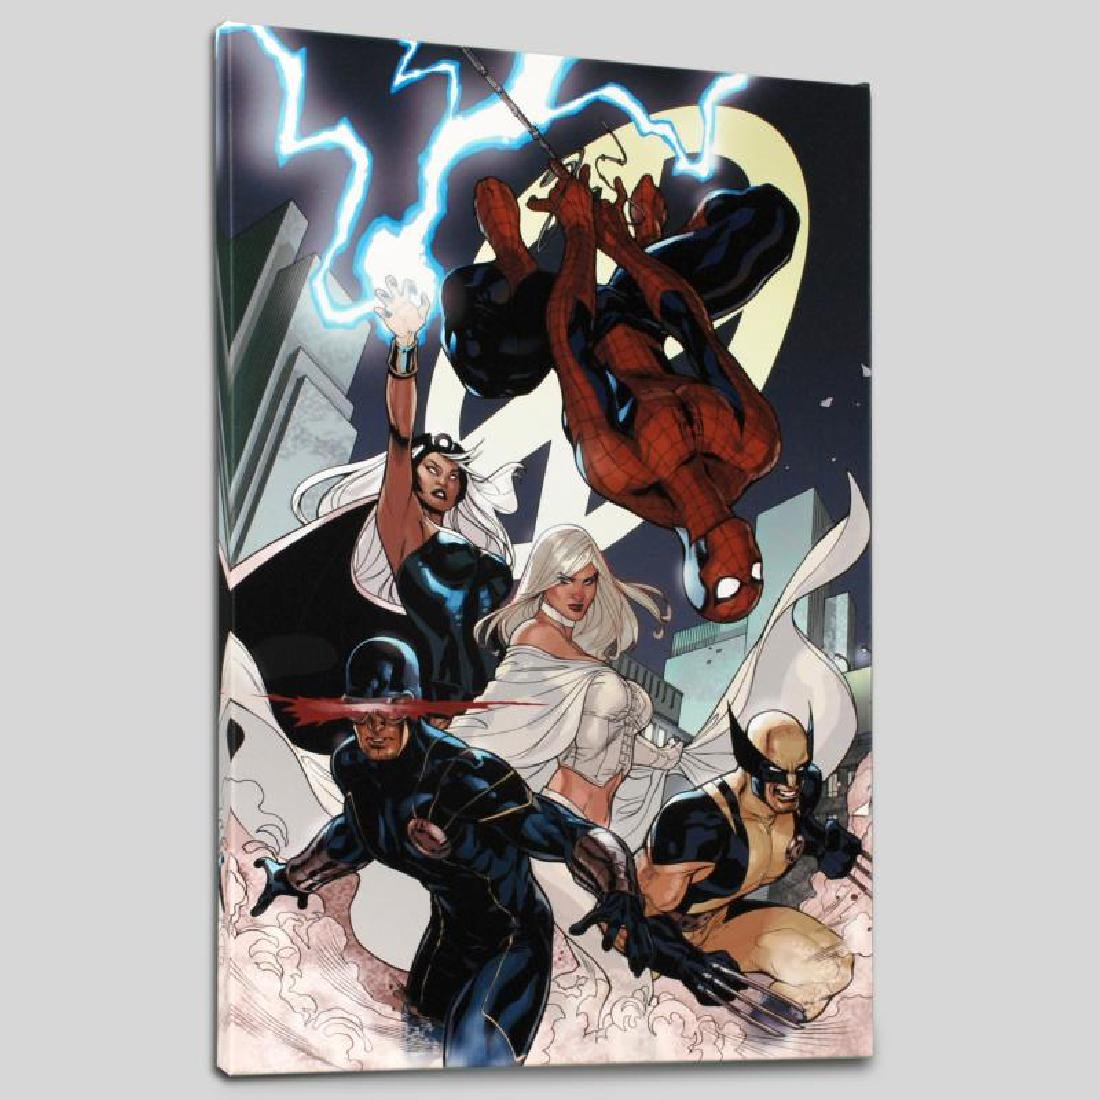 """X-Men #7"" Limited Edition Giclee on Canvas by Chris"